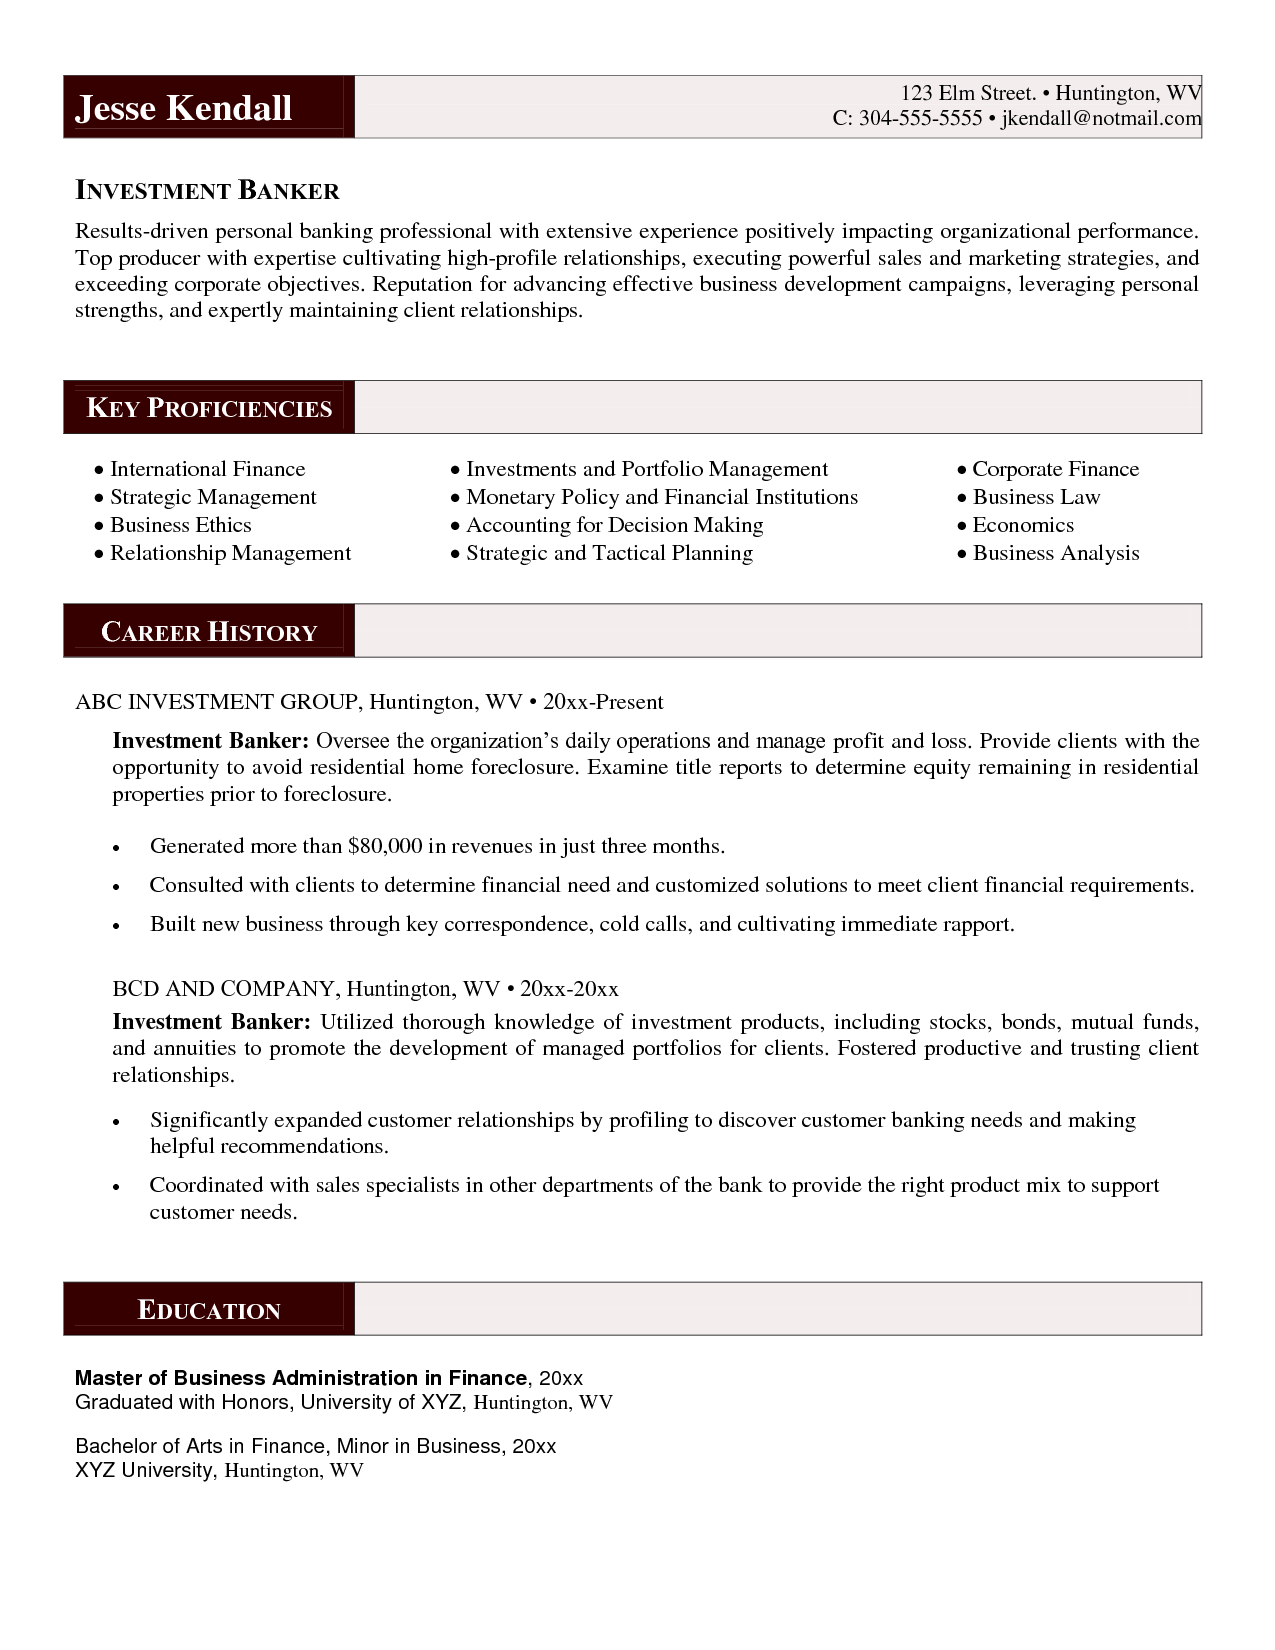 Investment Banker Resume Sample - http://www.resumecareer.info ...